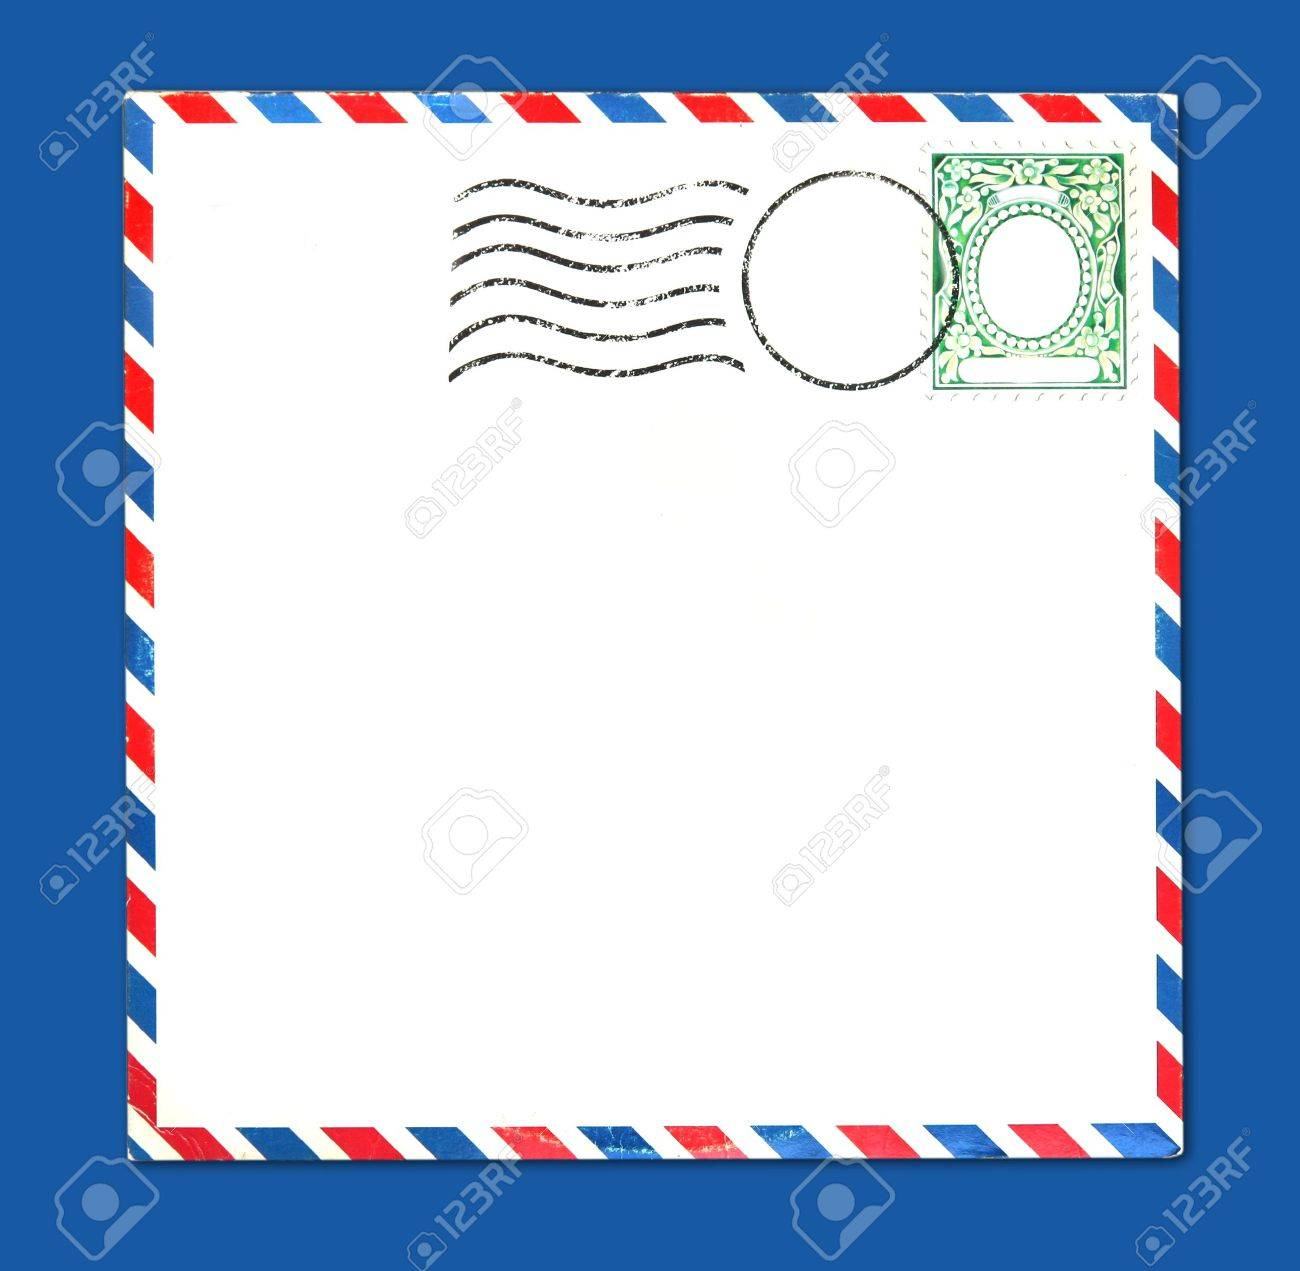 Old Airmail Parcel Type Envelope With Postal Stamp and Stripes